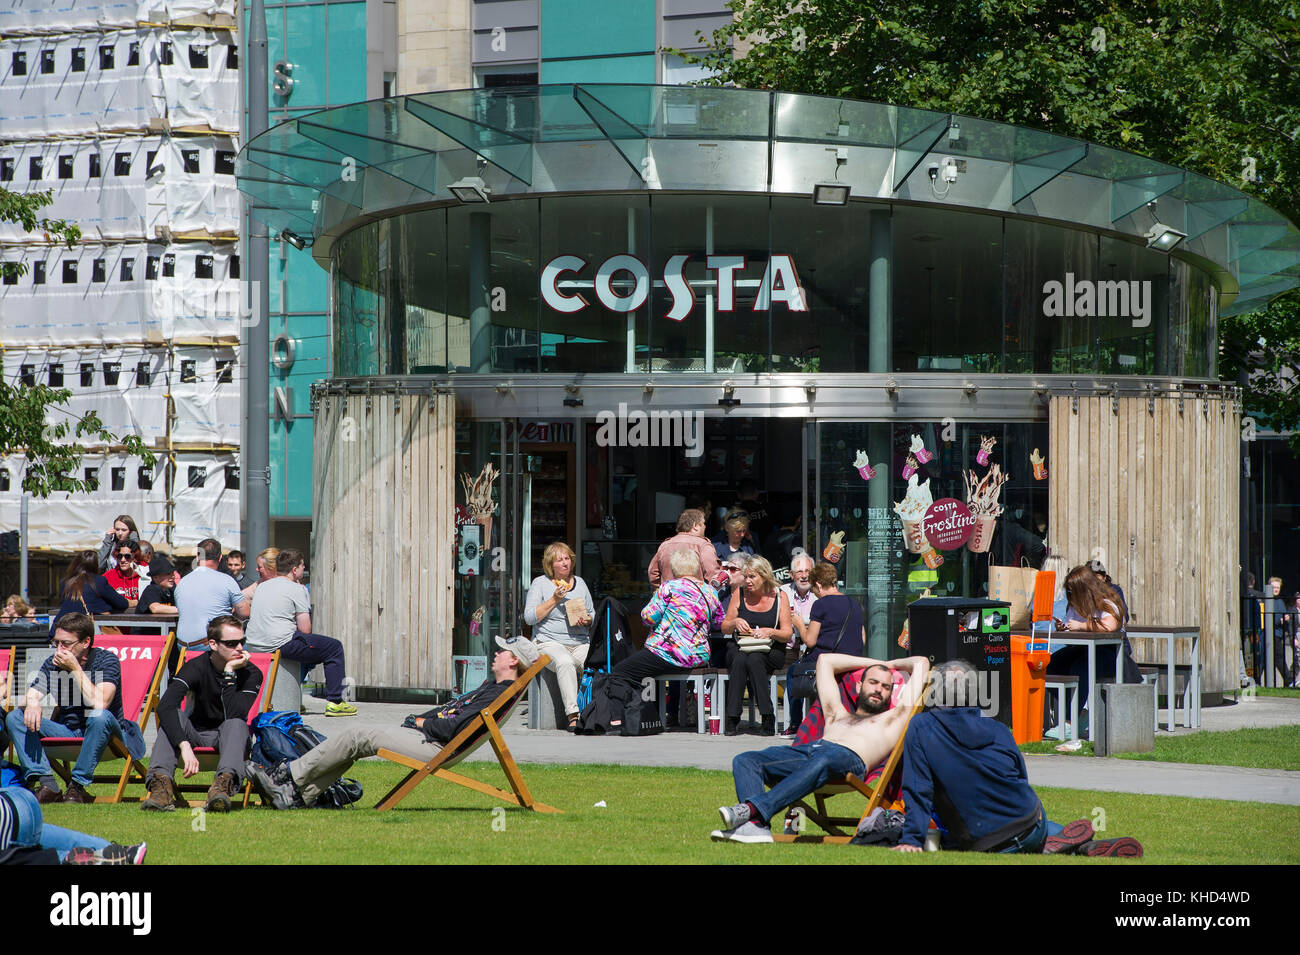 Customers Relax In Deck Chairs Outside The Costa Coffee Shop